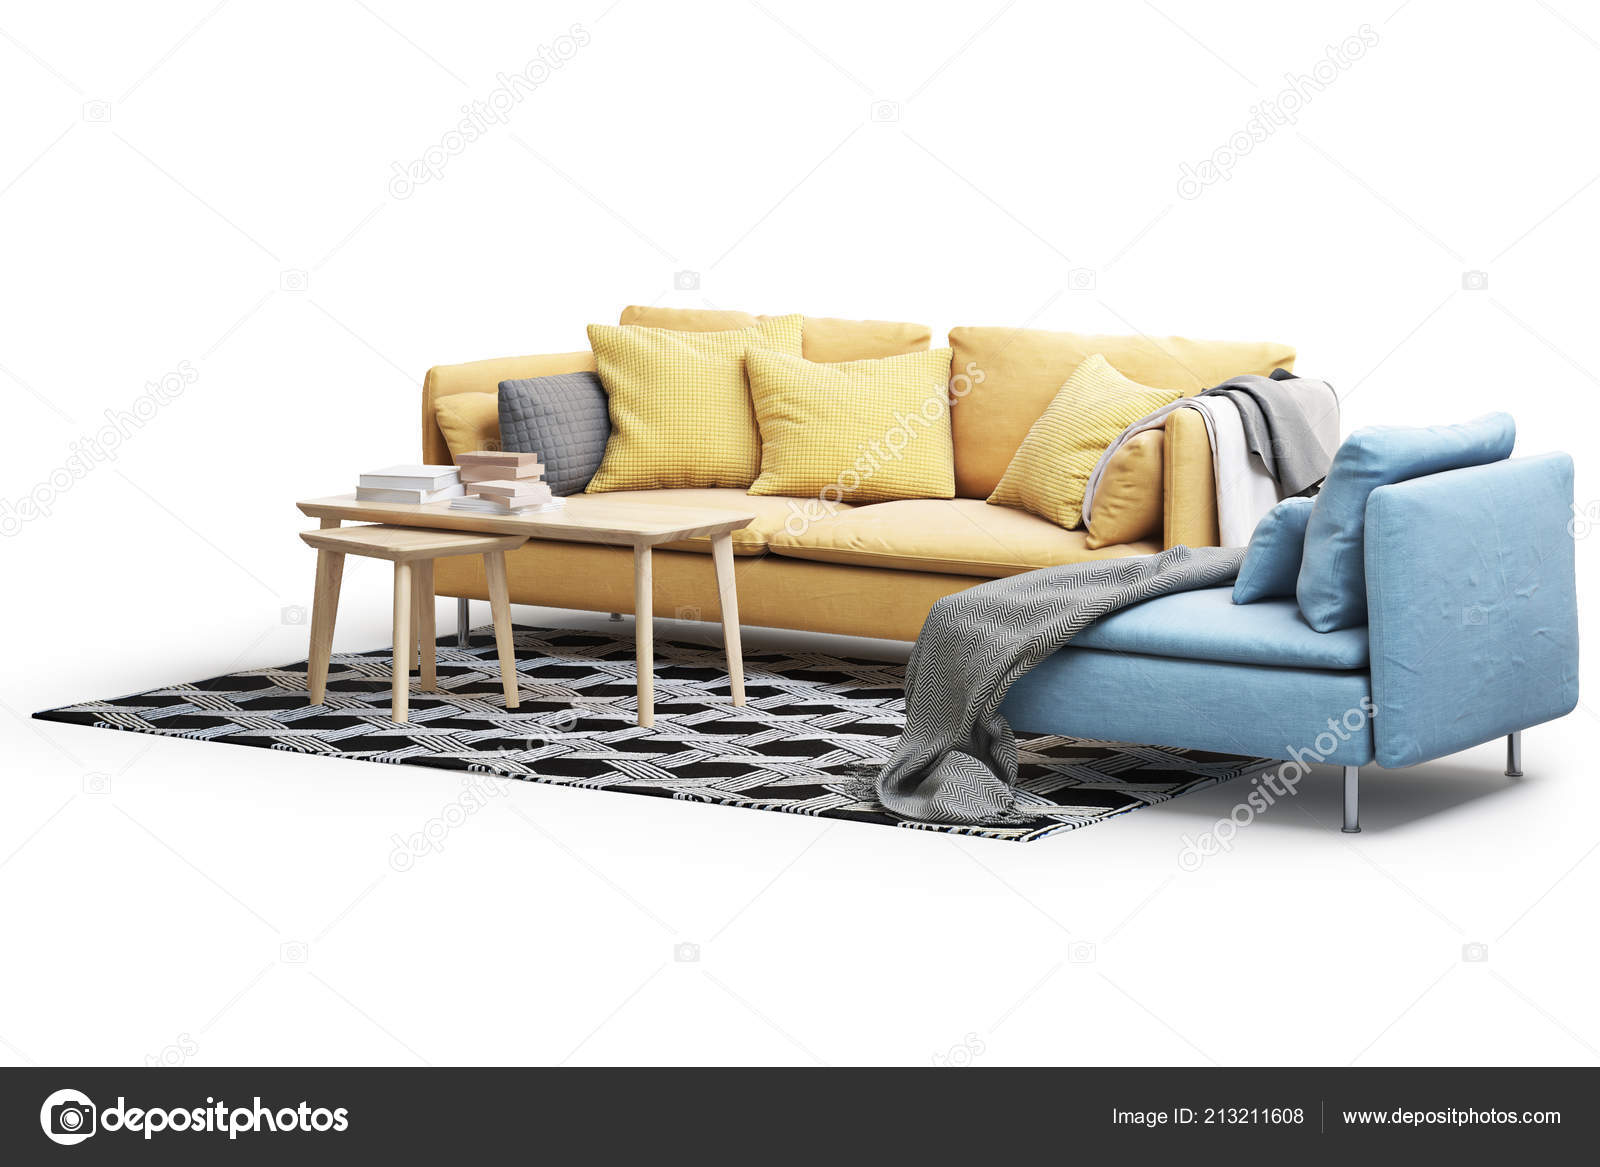 Phenomenal Modern Furniture Set Sofa Rug Chaise Longue Coffee Tables Unemploymentrelief Wooden Chair Designs For Living Room Unemploymentrelieforg